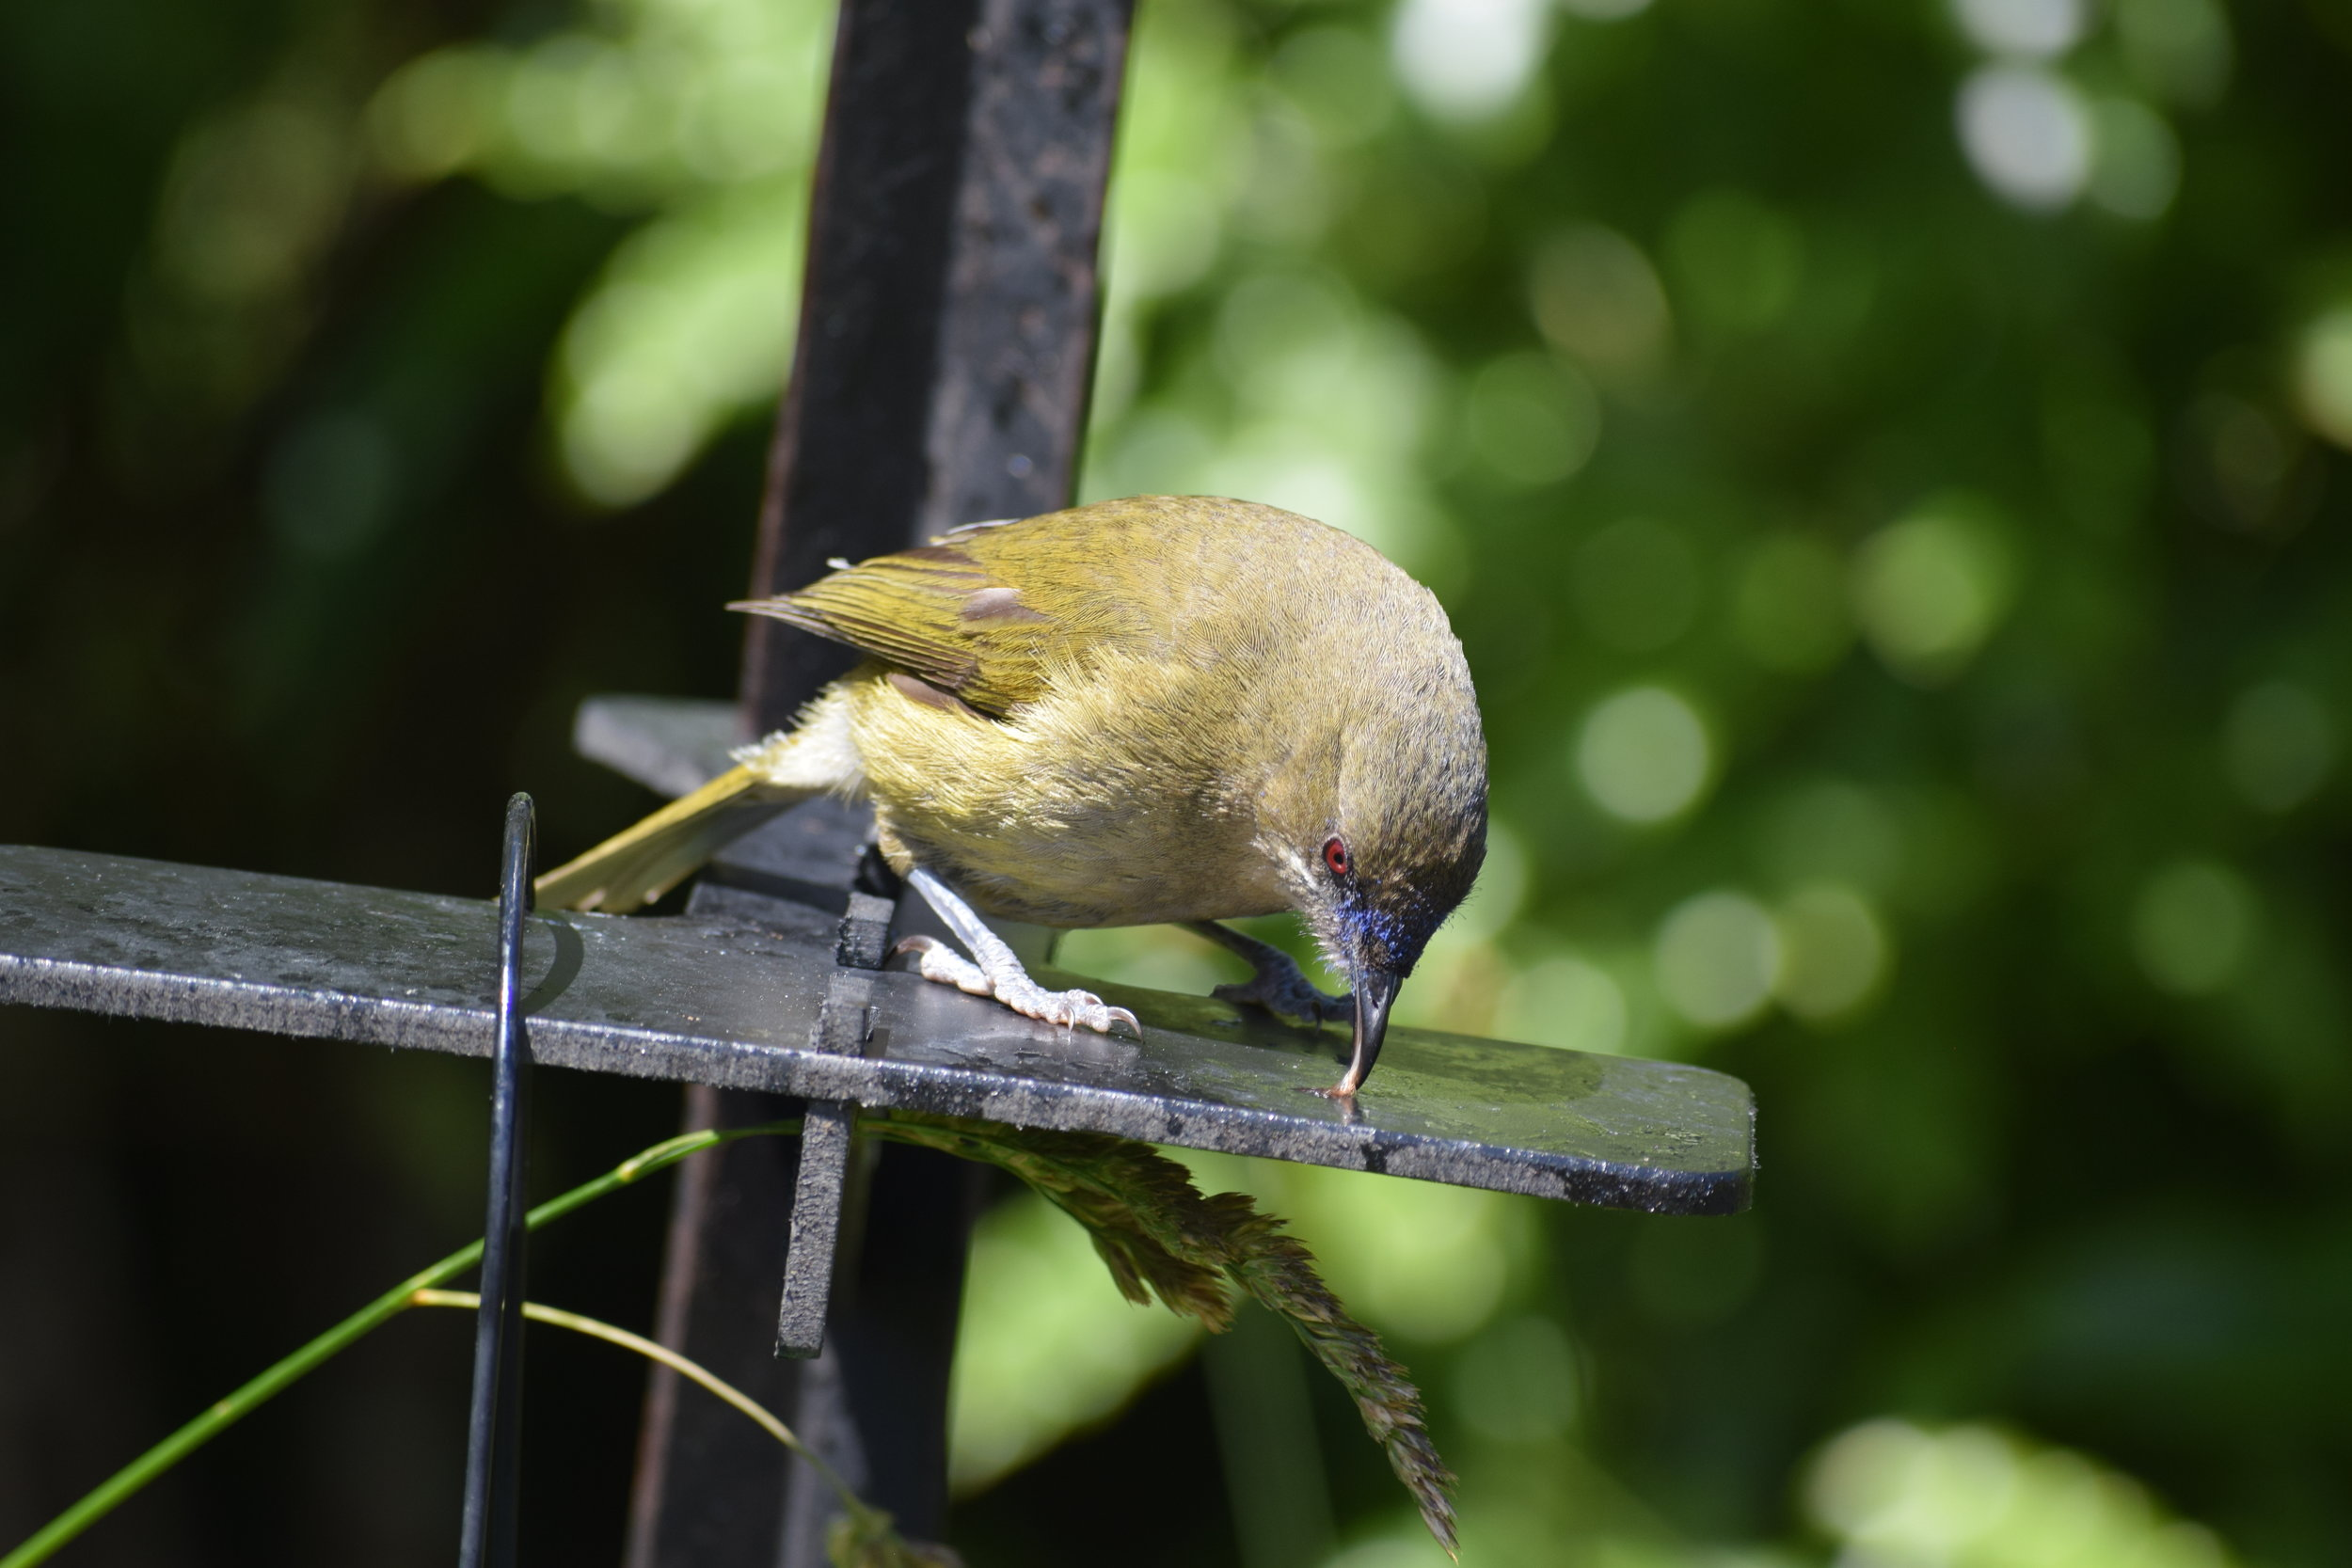 Bellbirds may not look flashy, but they produce the most incredible song! When Captain Cook first visited NZ in 1770, he commented on hearing the beautiful sound of bells from the shore. There must have been something tasty on this feeder platform - if you look closely, you can see this bellbird's tongue!